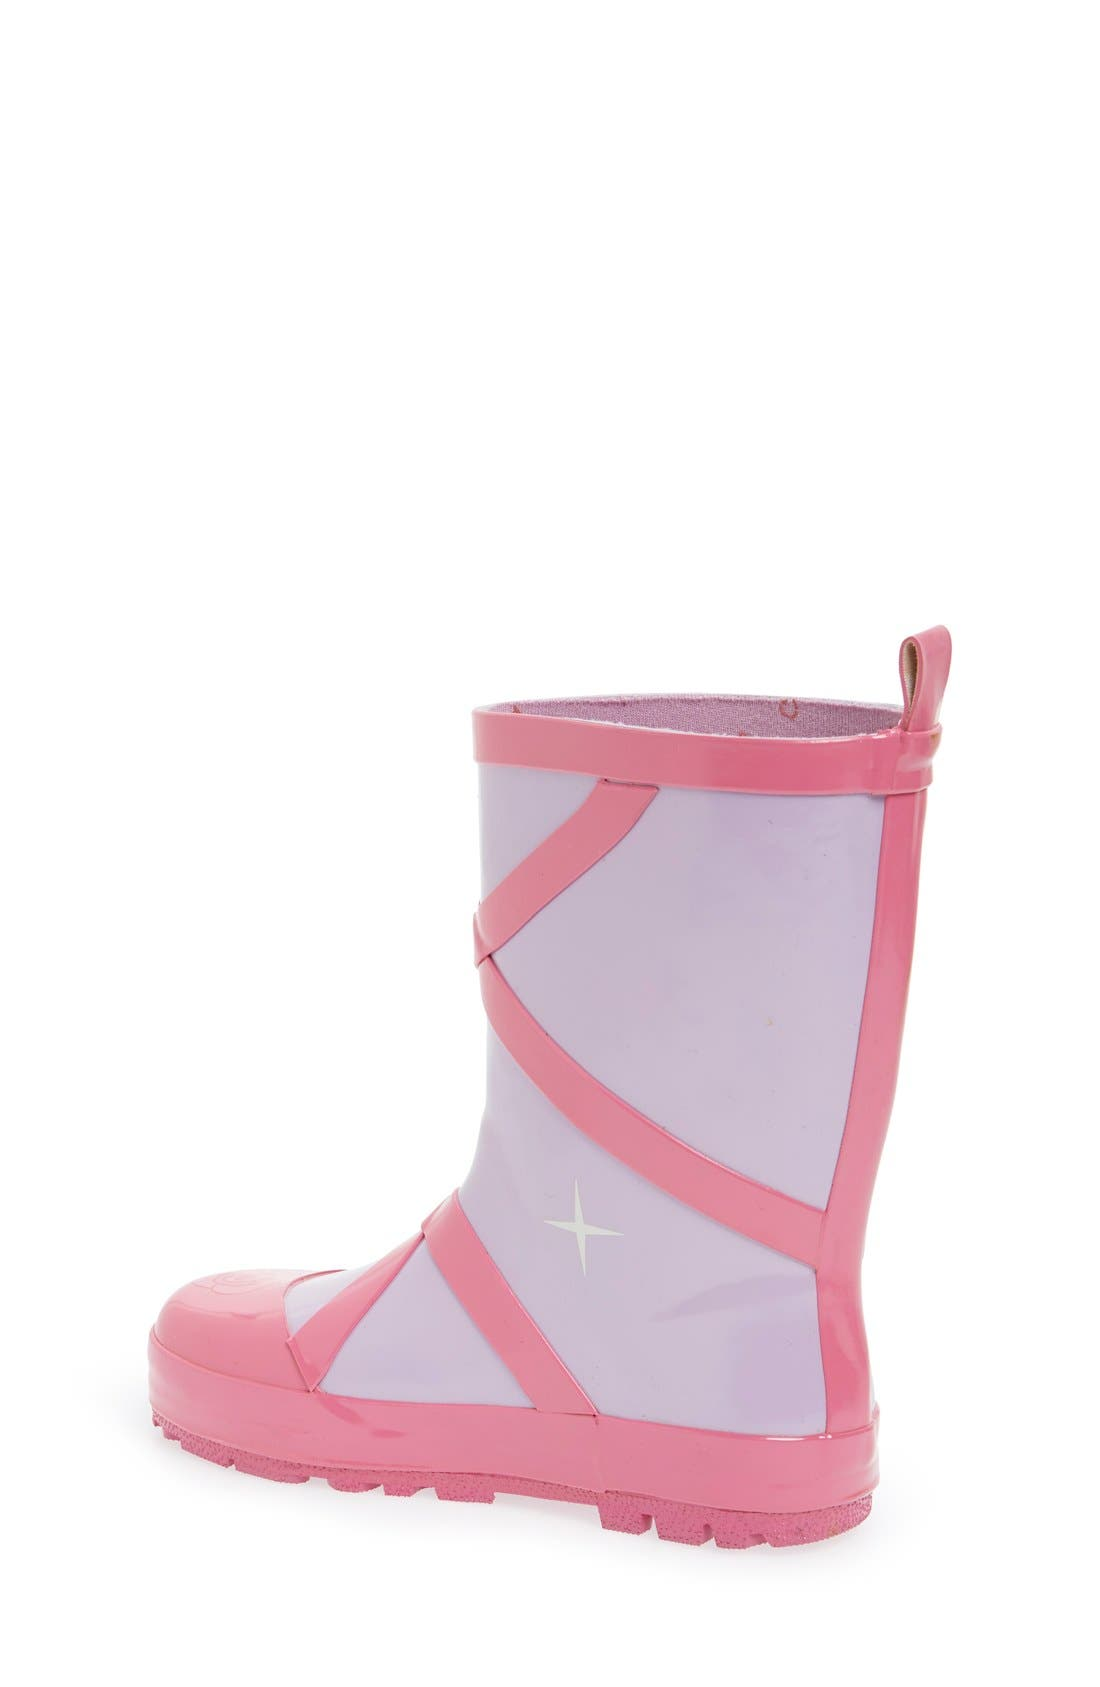 'Ballerina' Waterproof Rain Boot,                             Alternate thumbnail 2, color,                             550